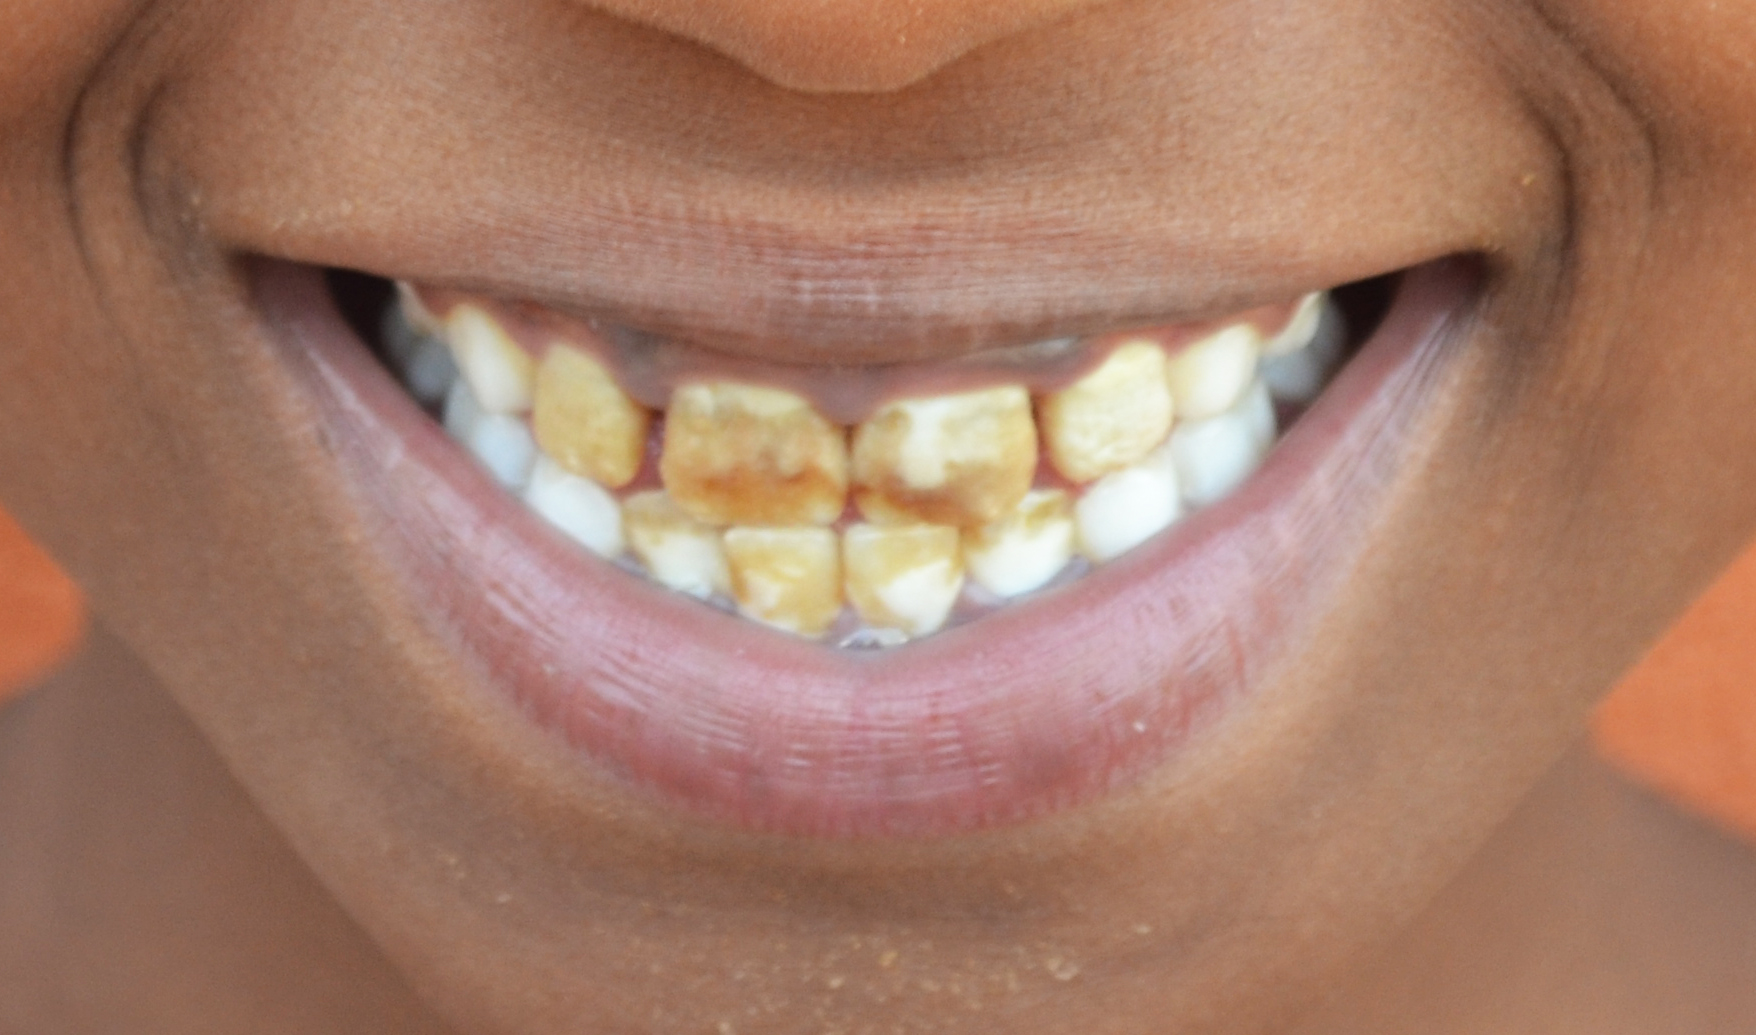 *Angie's teeth are brown and broken because of high fluoride.